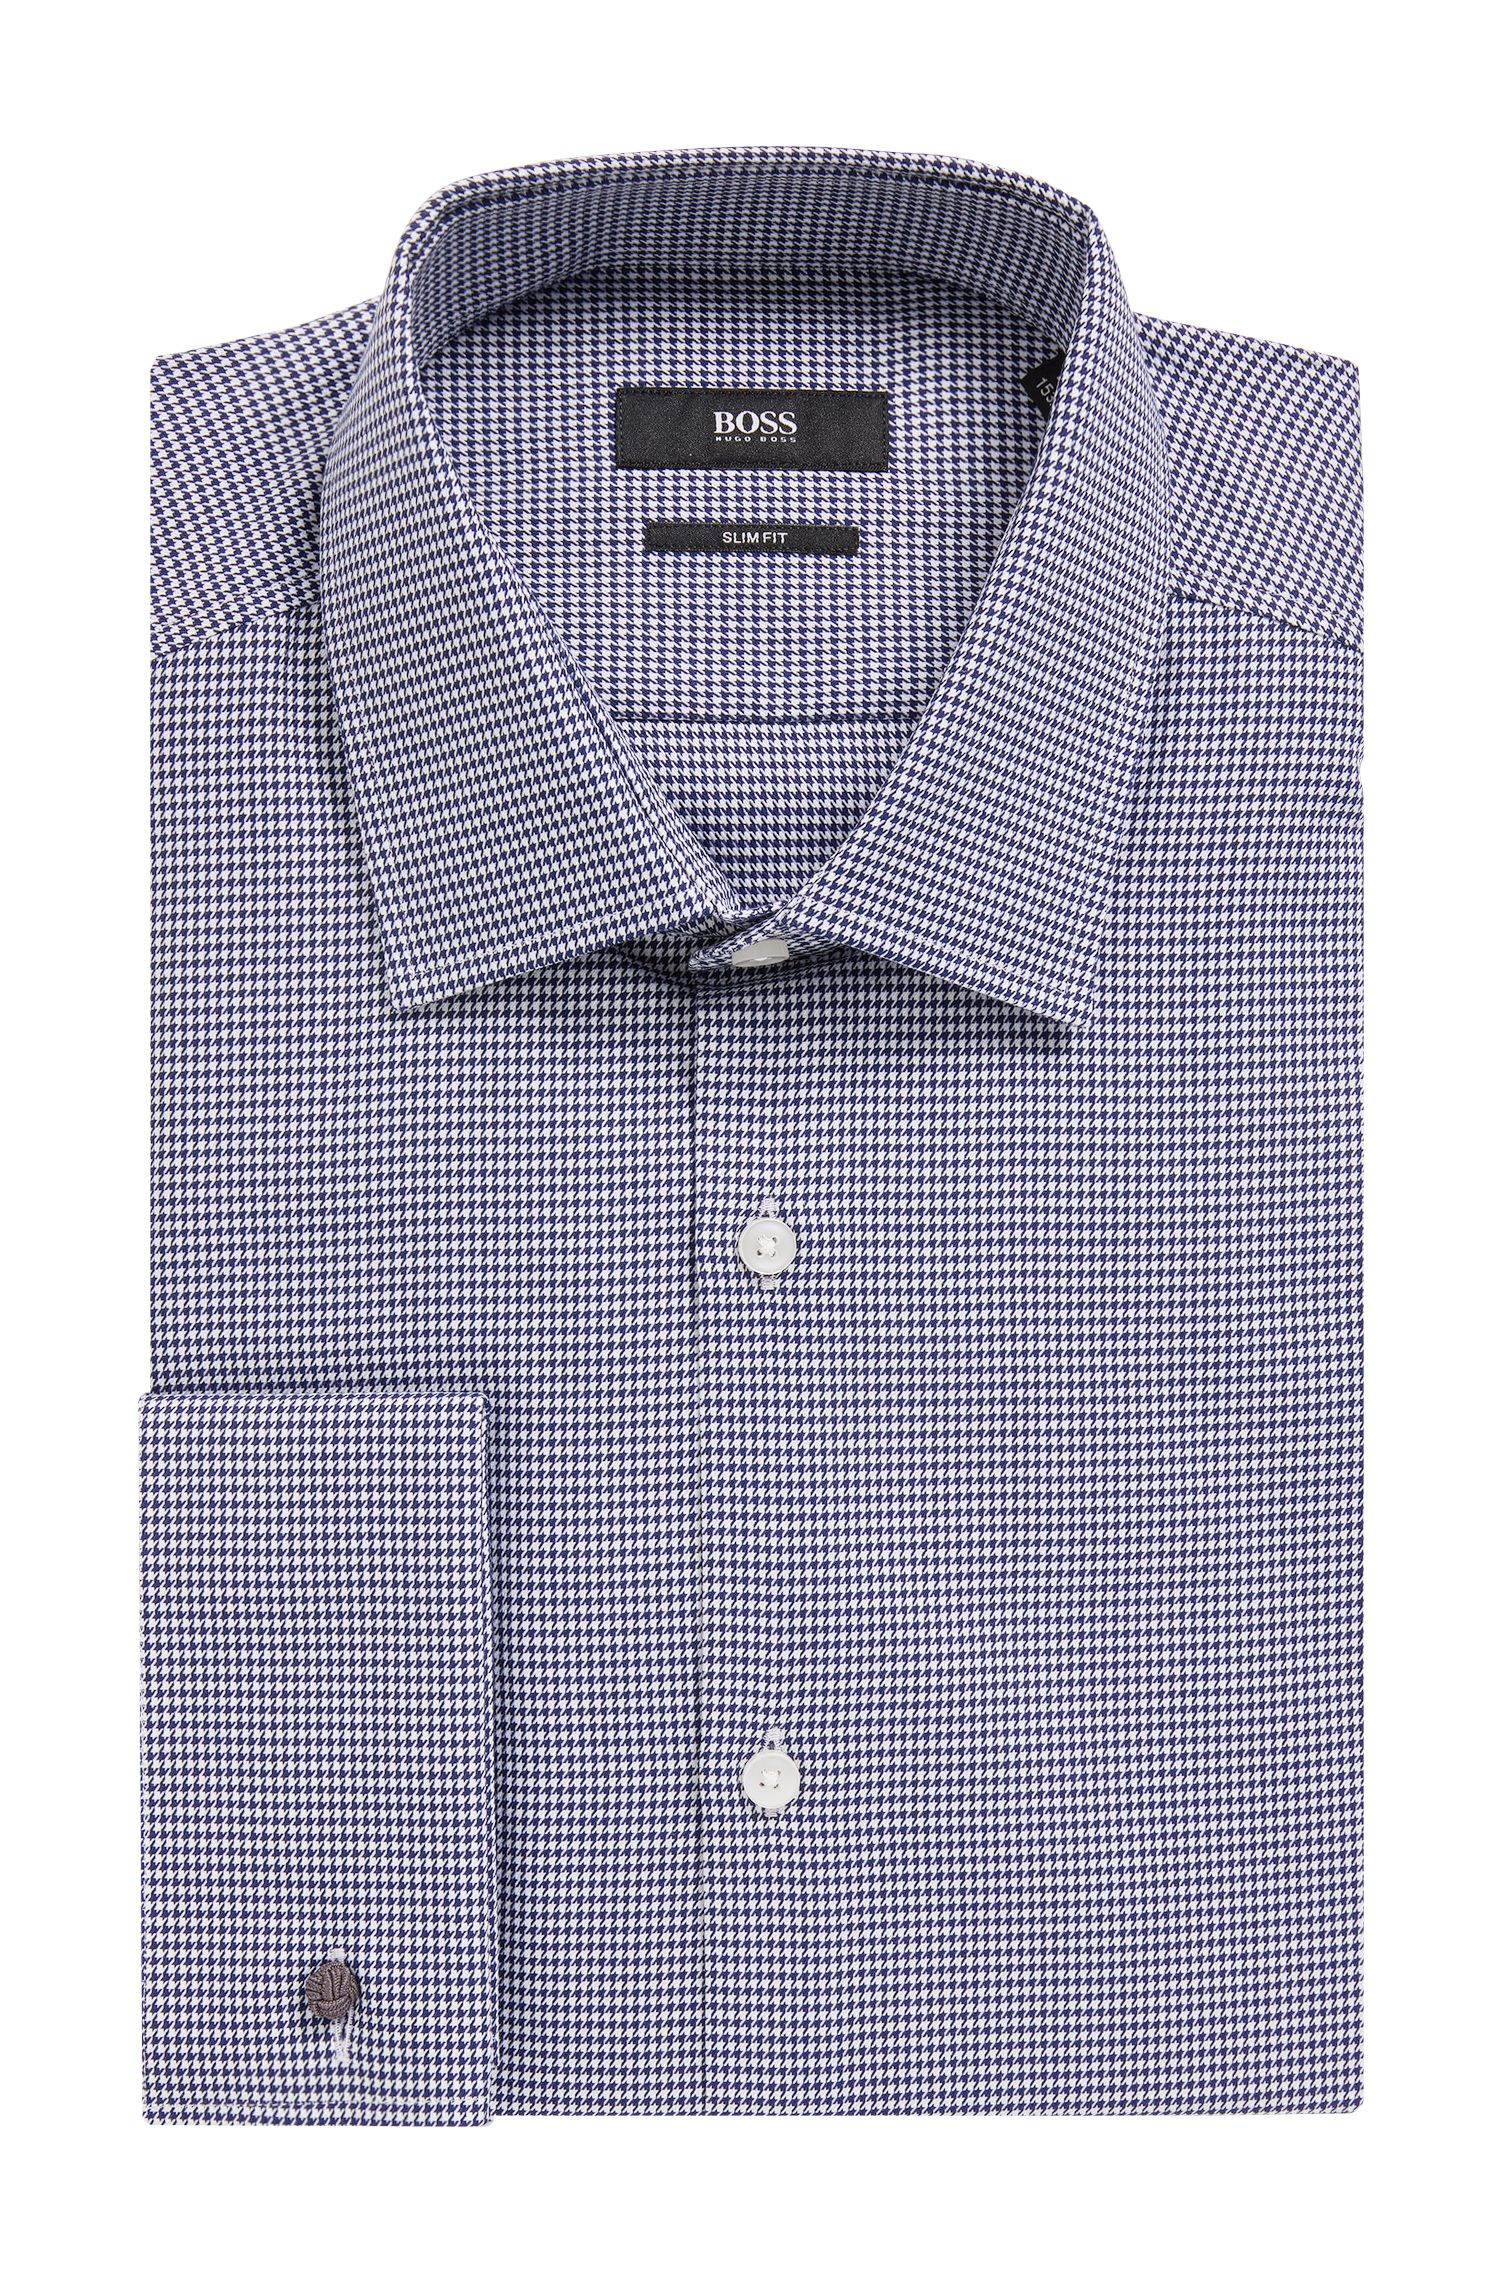 Houndstooth Dress Shirt, Slim Fit | Jacques